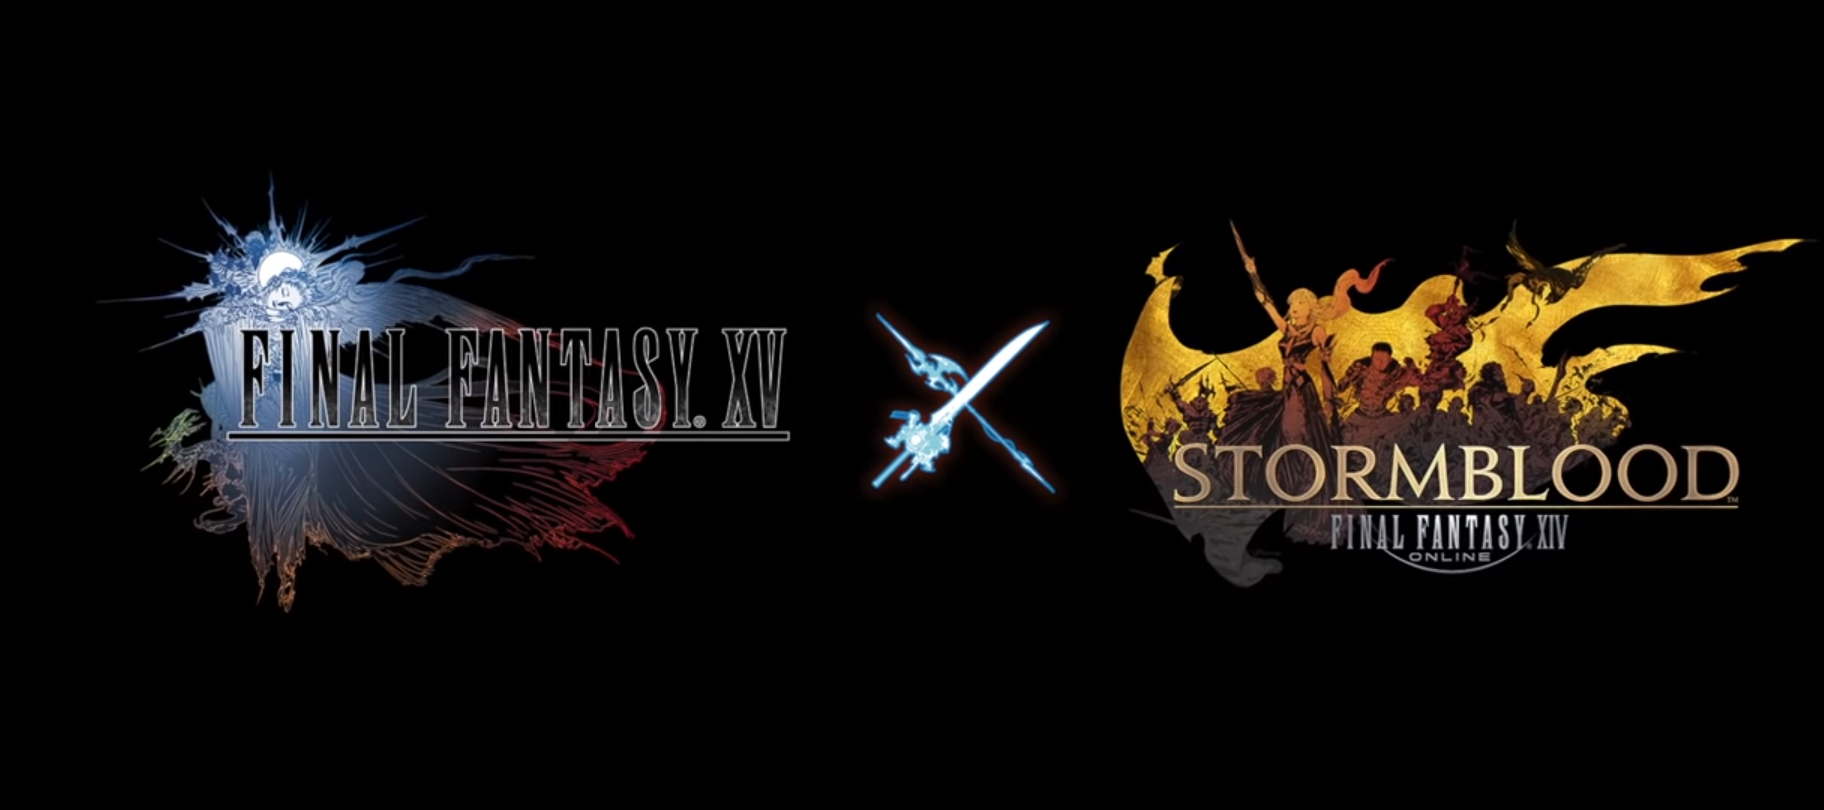 Final Fantasy XV Will Crossover With Final Fantasy XIV In A New Update